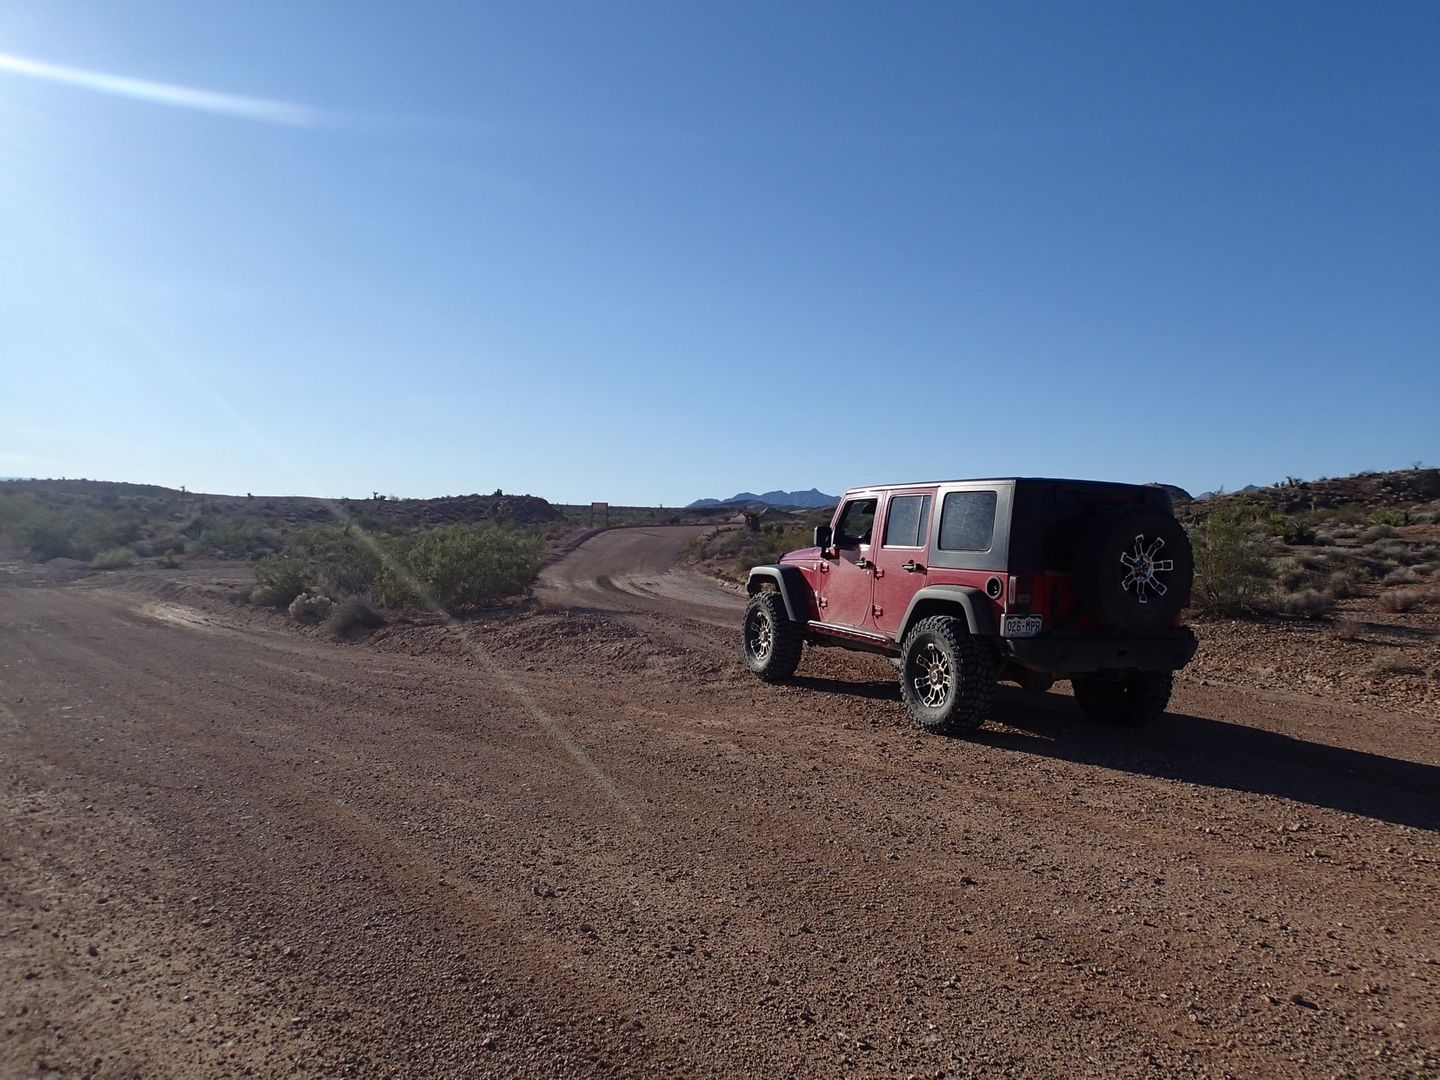 Gold Butte Backcountry Byway - Waypoint 12: 113 Intersection